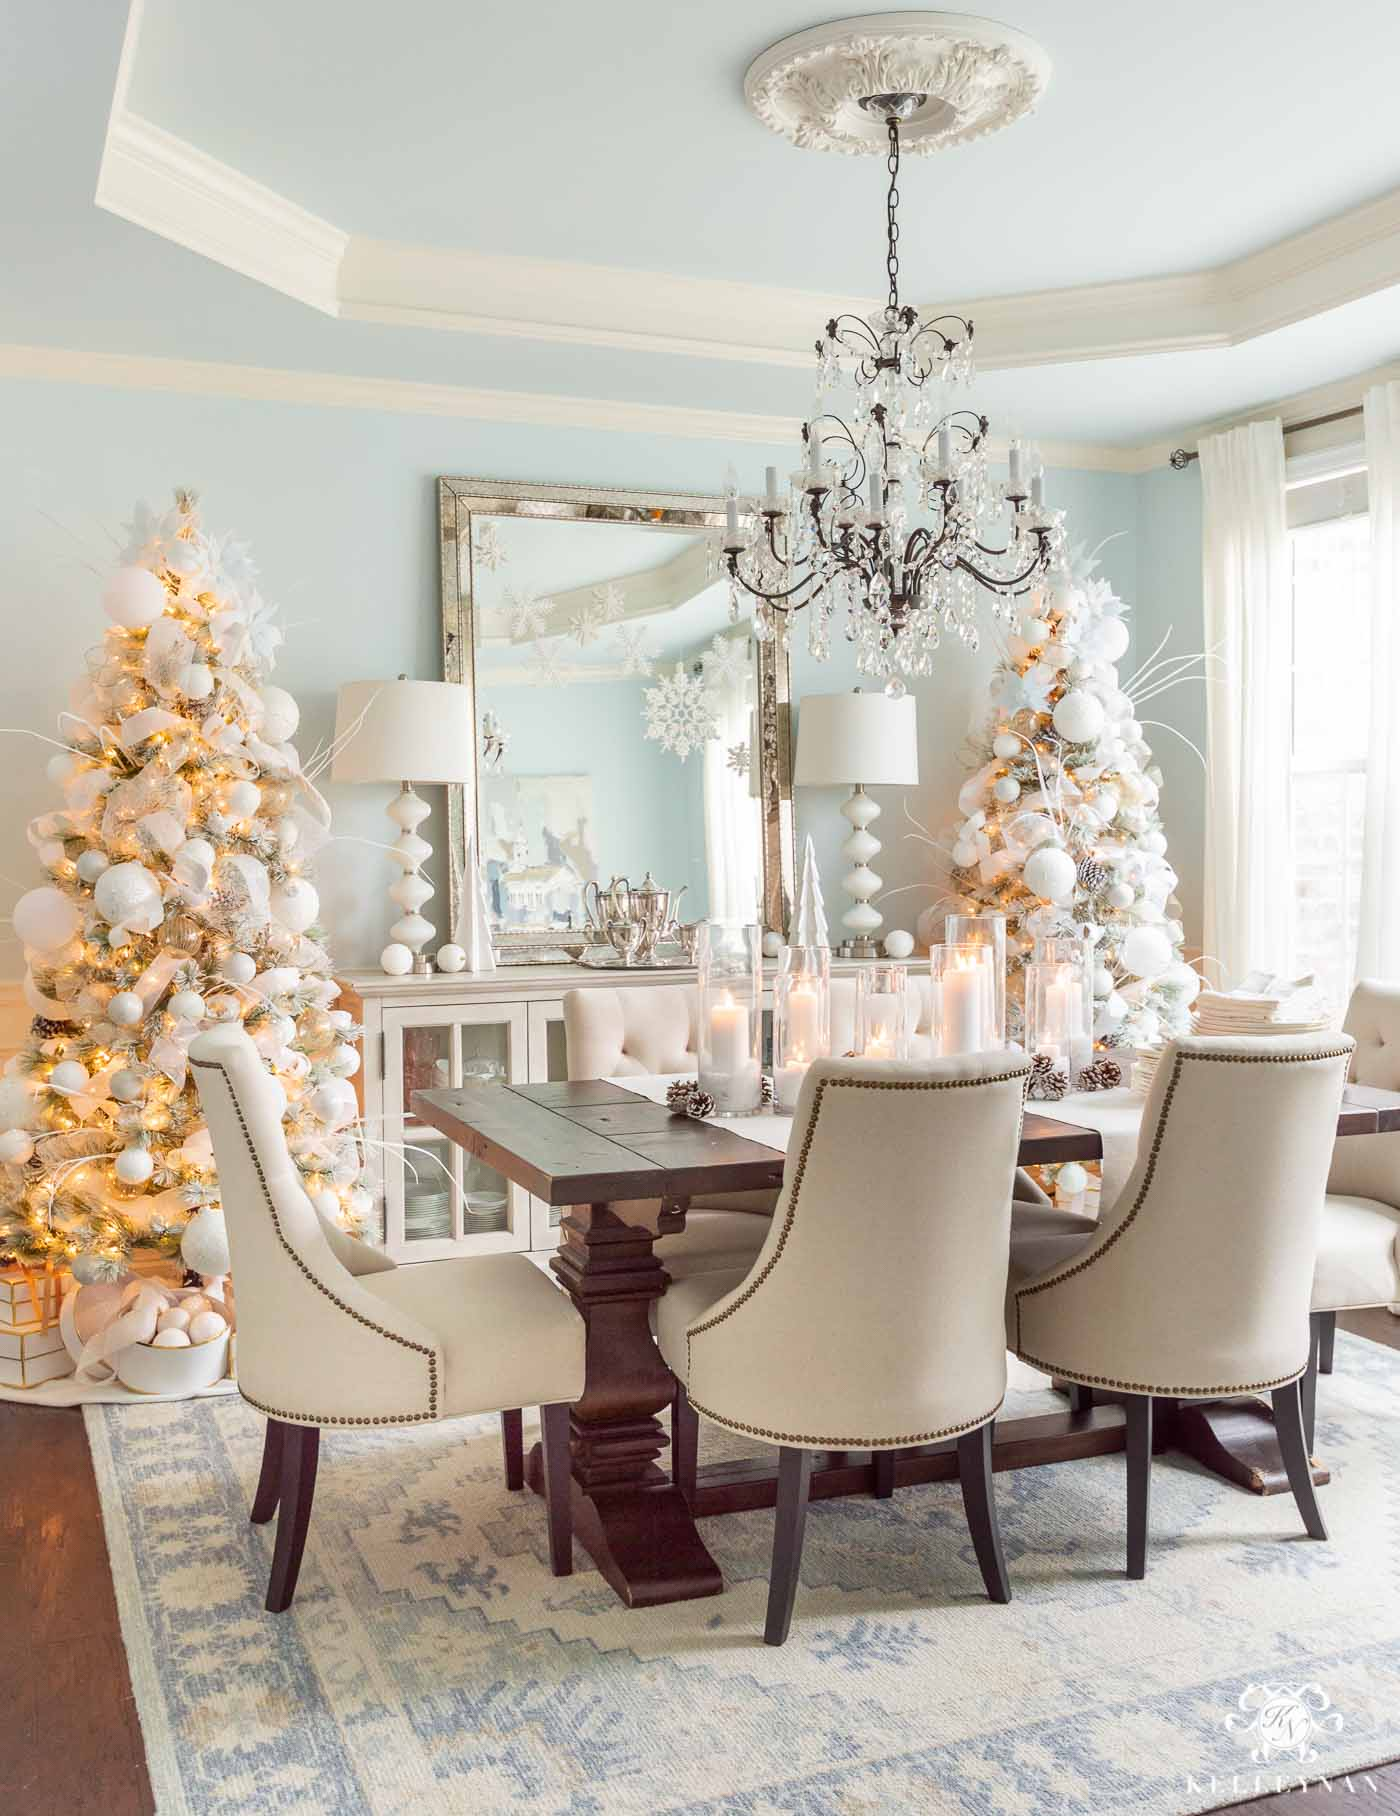 Christmas Decor and Christmas Trees in the Dining Room -- Snowy White and Icy Blue